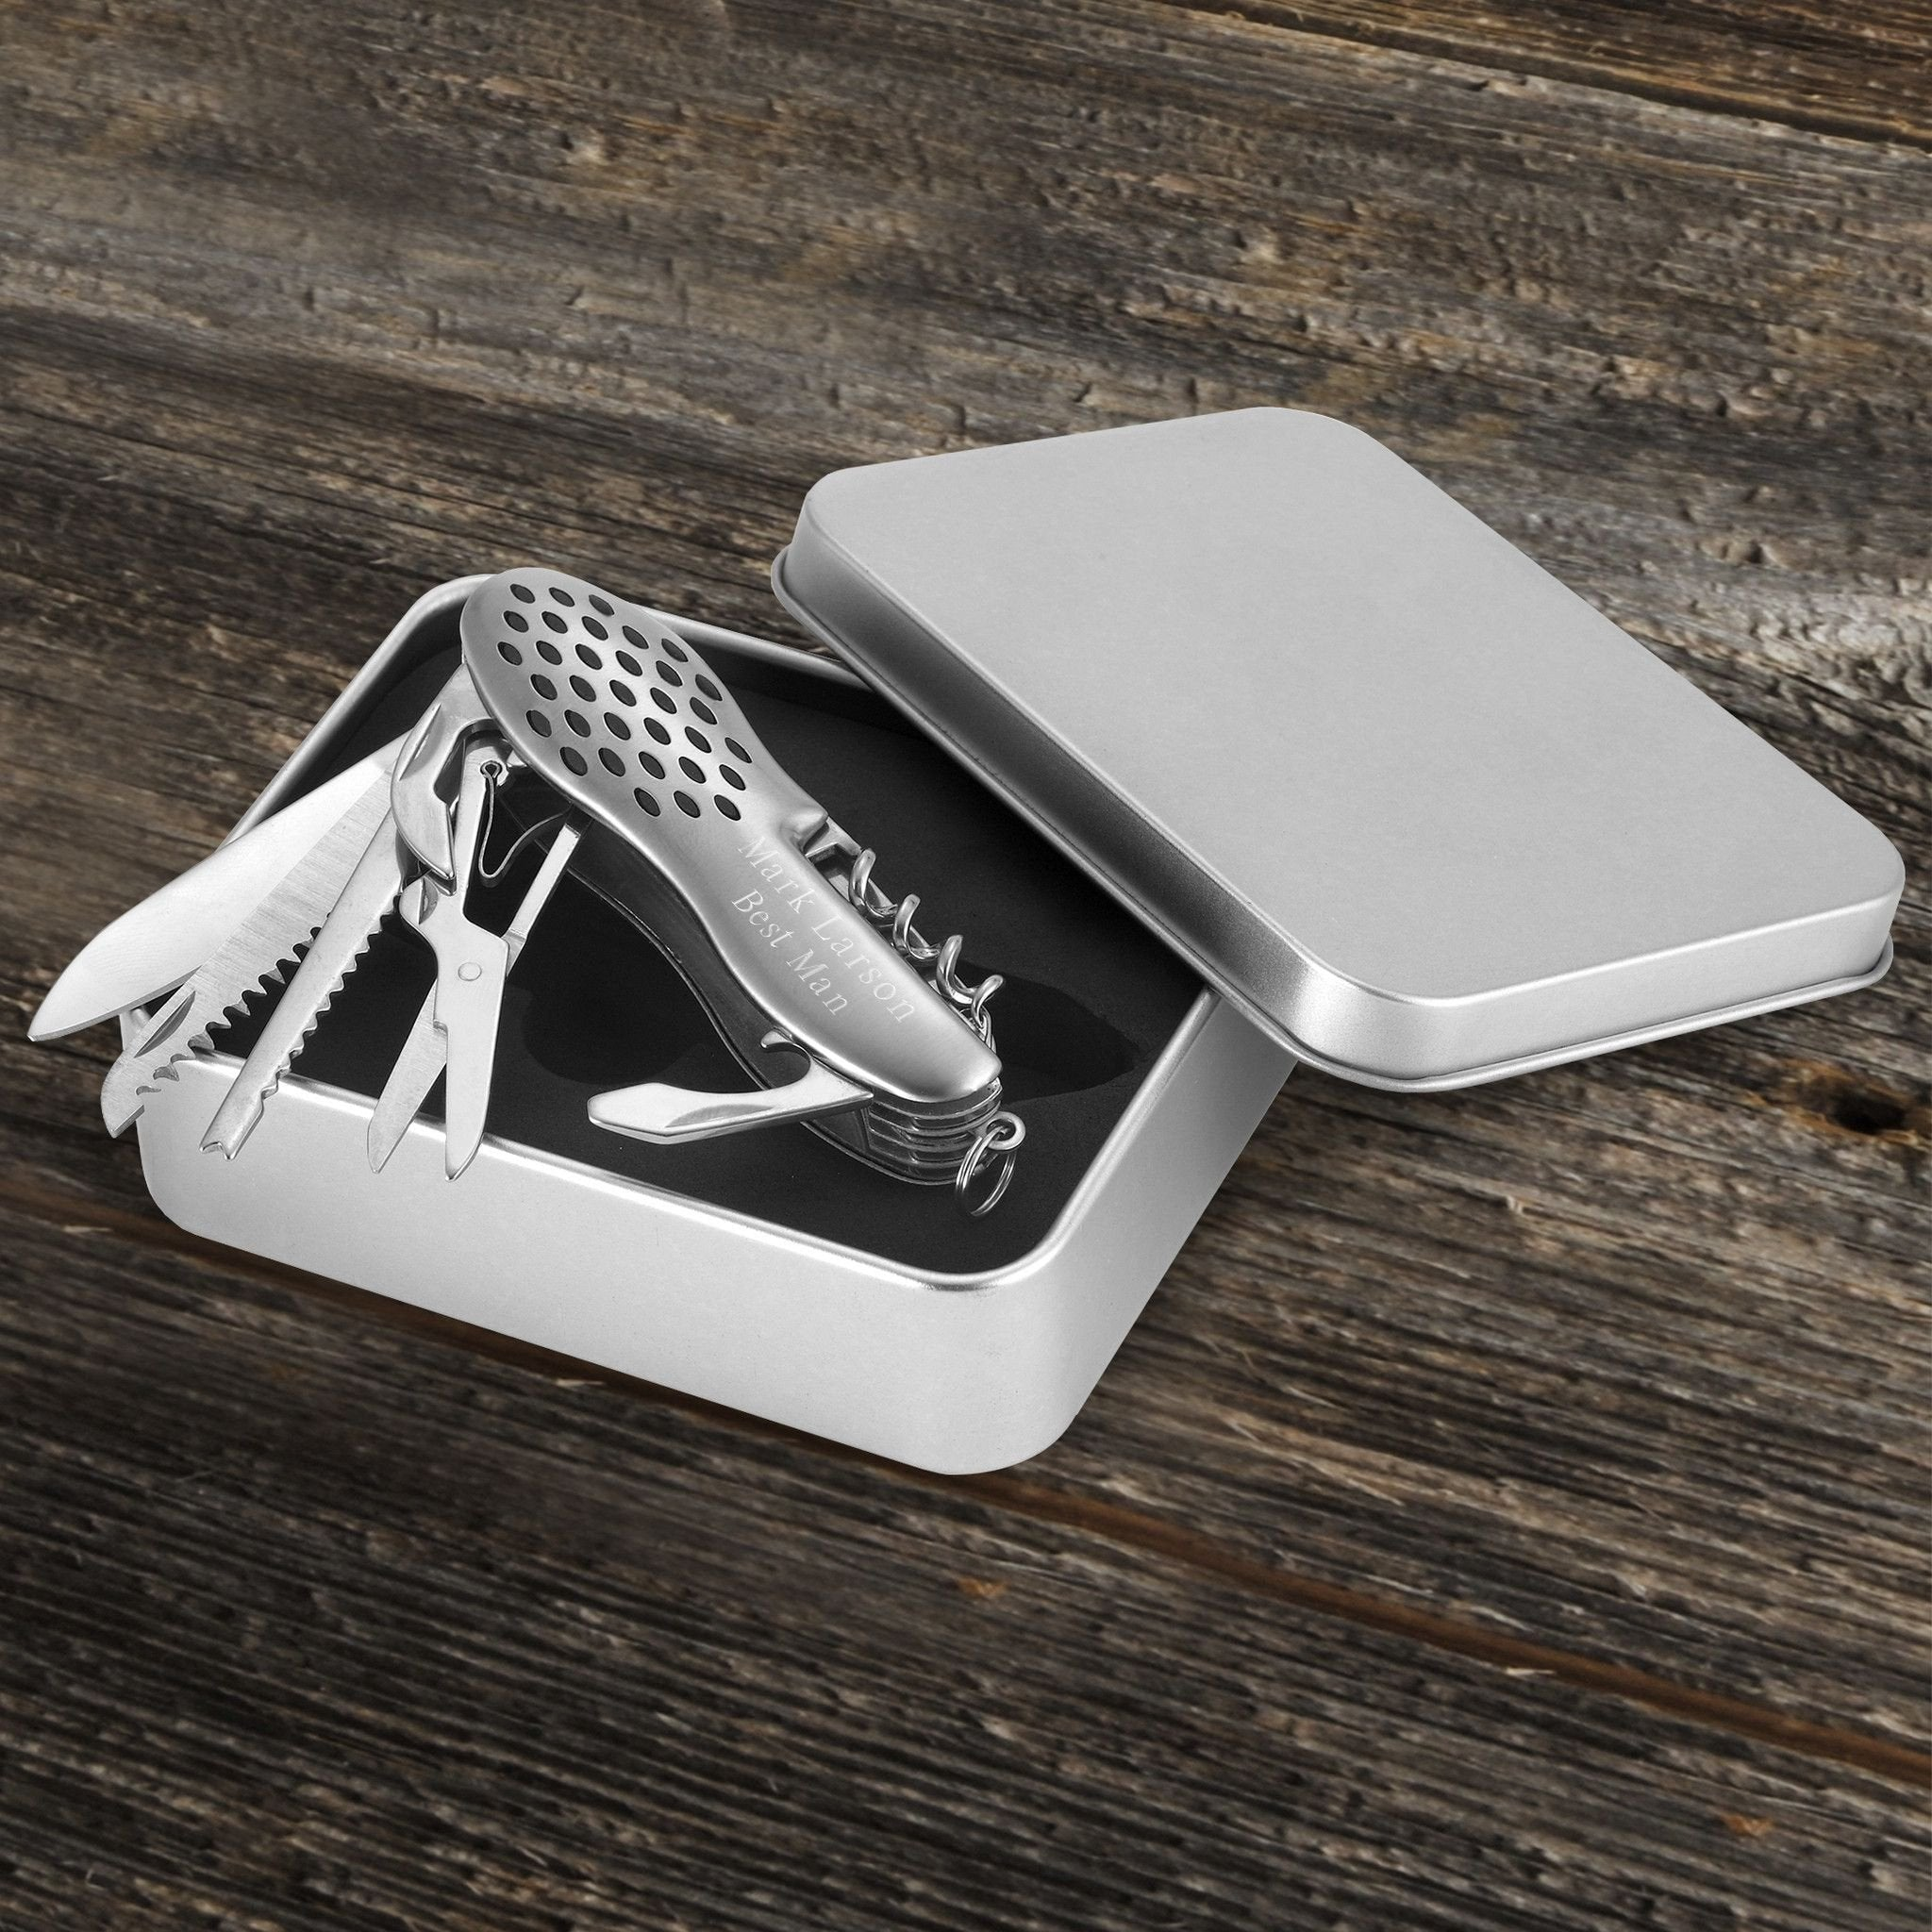 Personalized 13 Function Swiss Army Knife